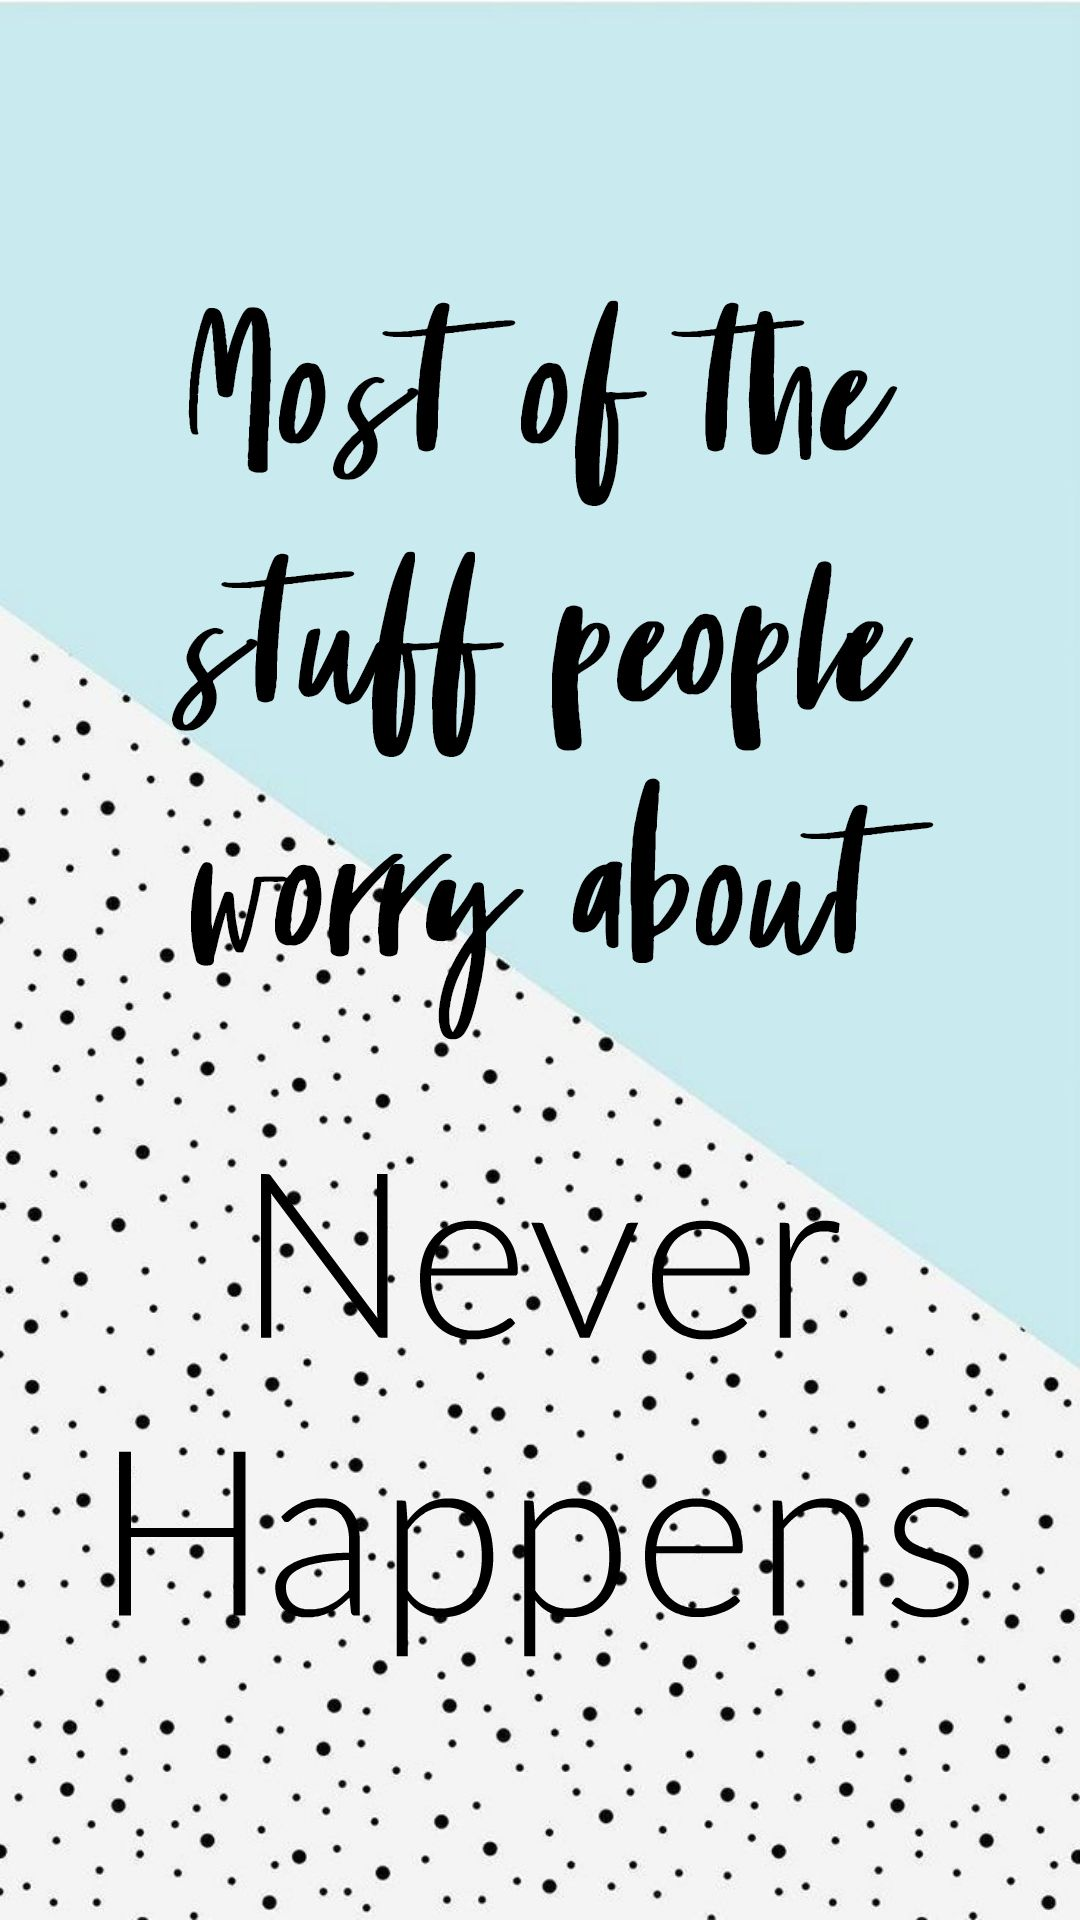 Free Phone Wallpapers And Backgrounds 1 Gemmaetc Com Funny Quotes For Kids Words Quotes For Kids